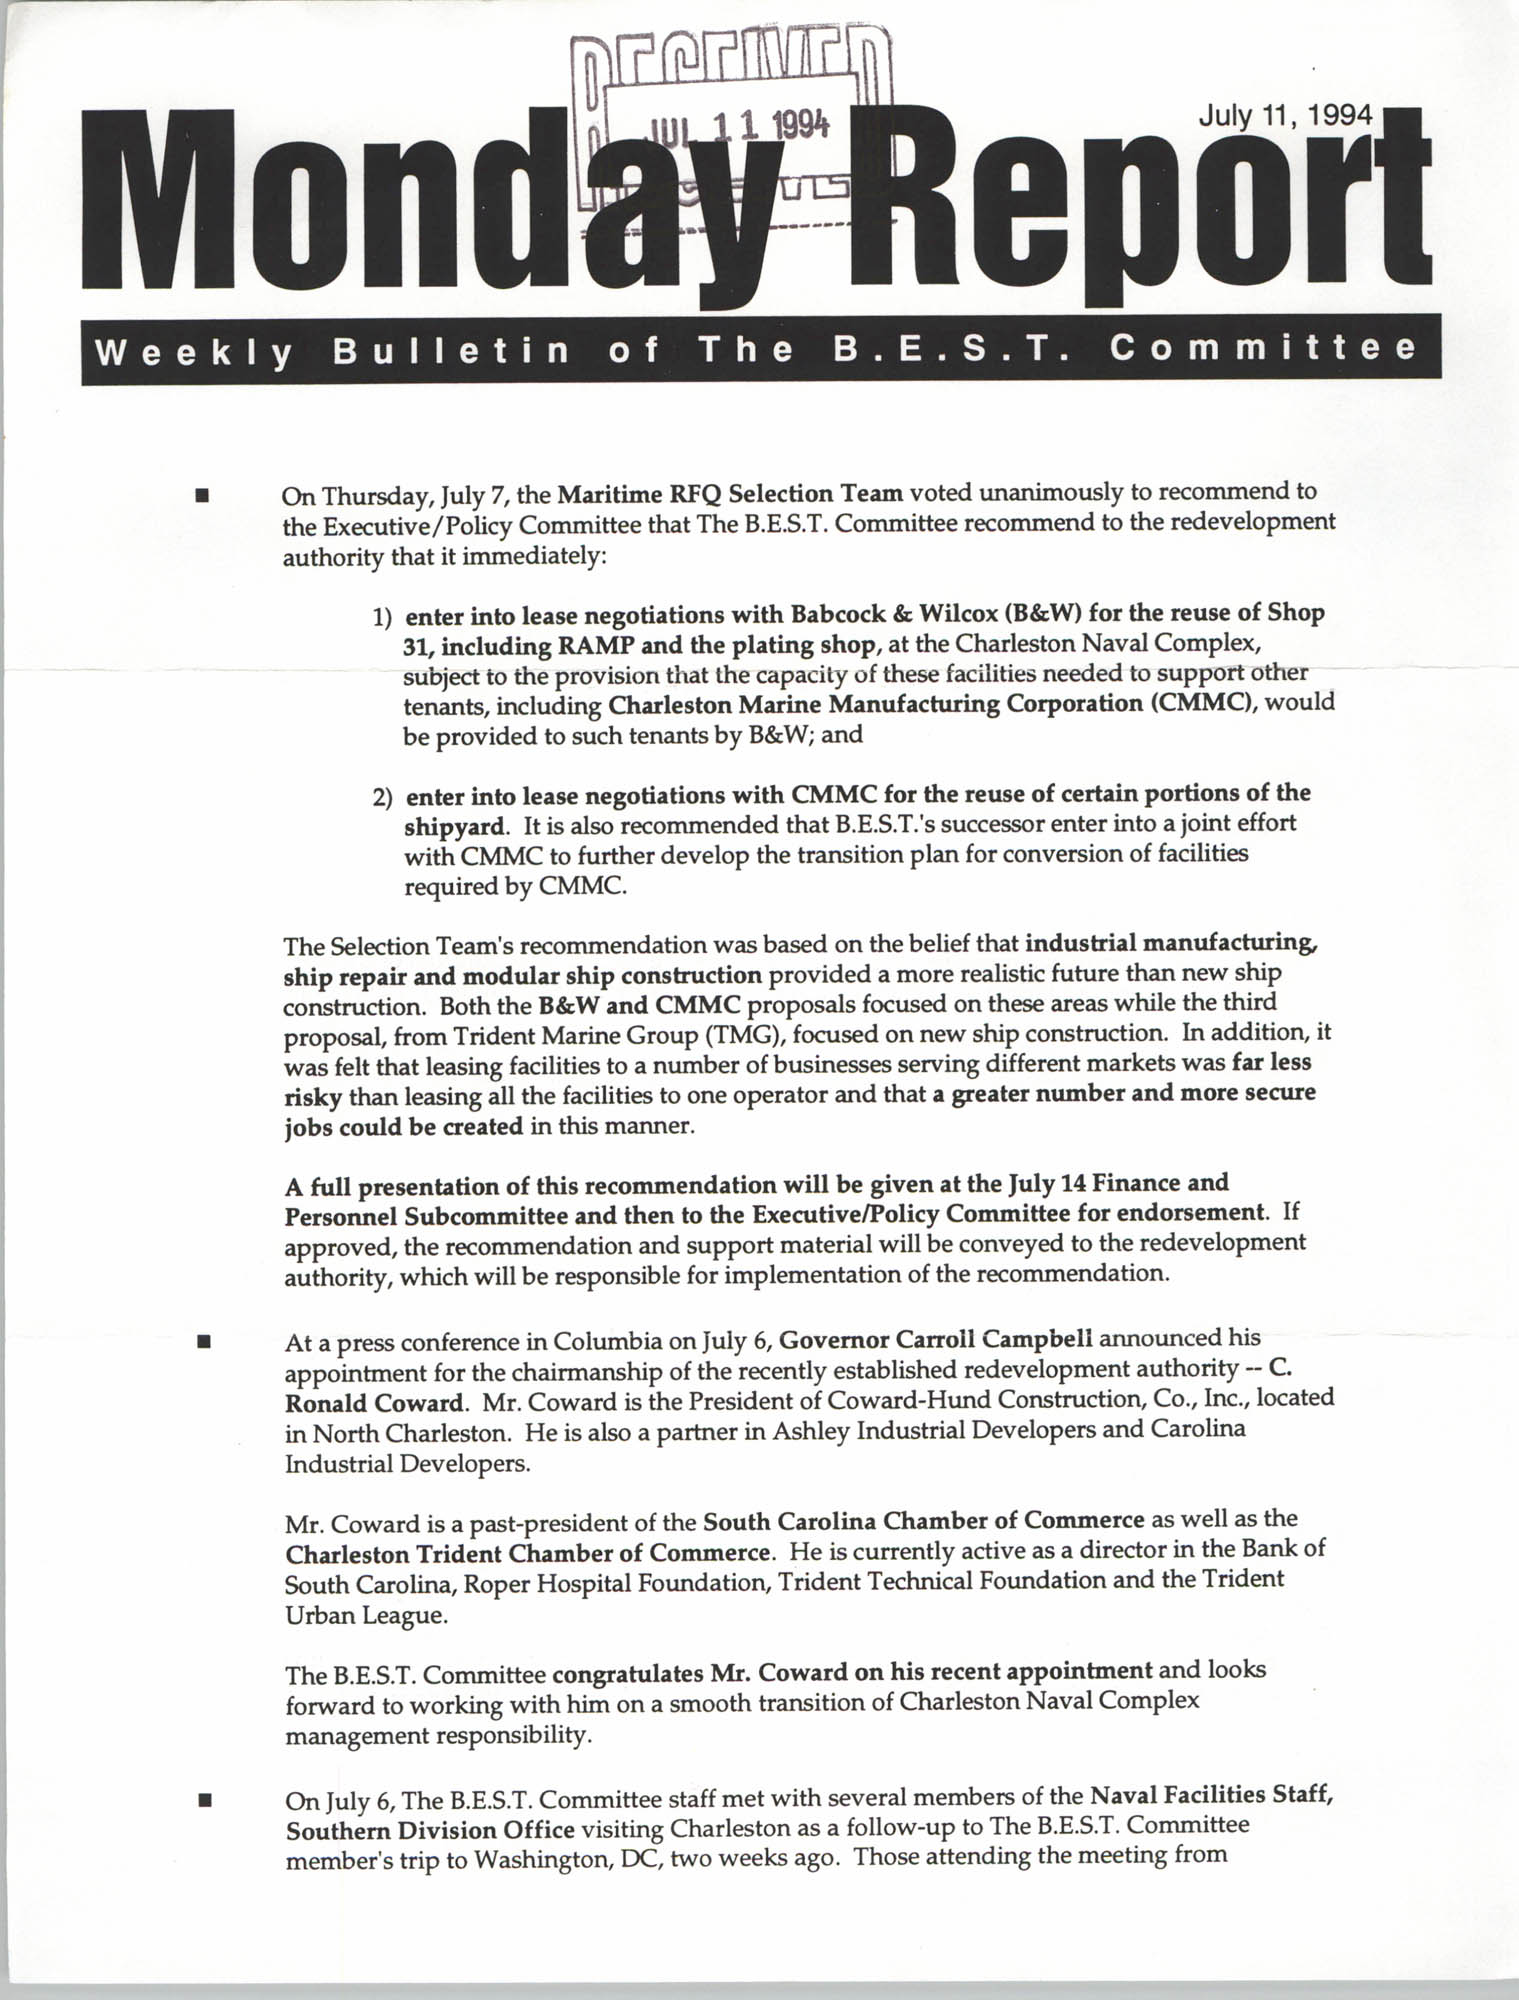 Monday Report, Weekly Bulletin of The B.E.S.T. Committee, July 11, 1994